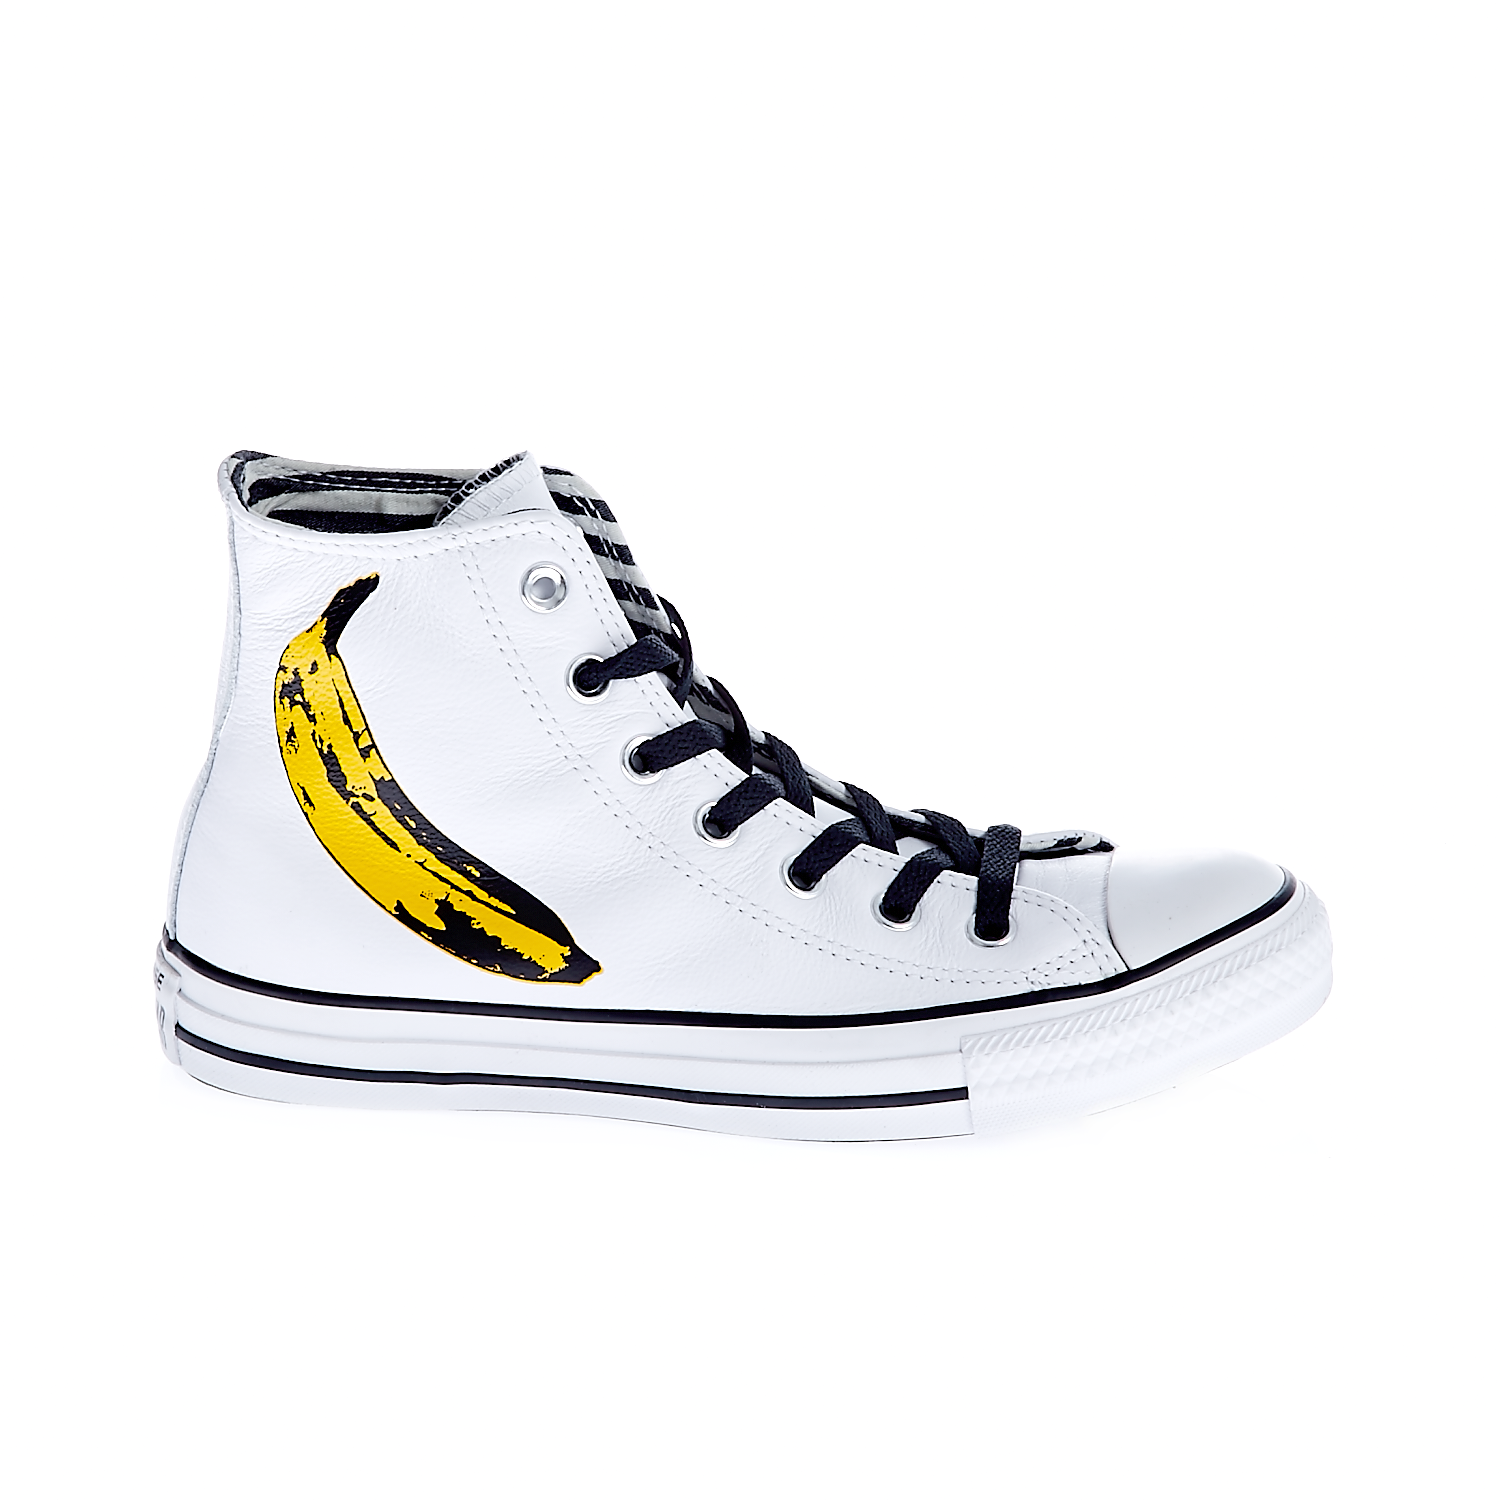 CONVERSE – Unisex παπούτσια Chuck Taylor All Star Andy Warhol λευκά